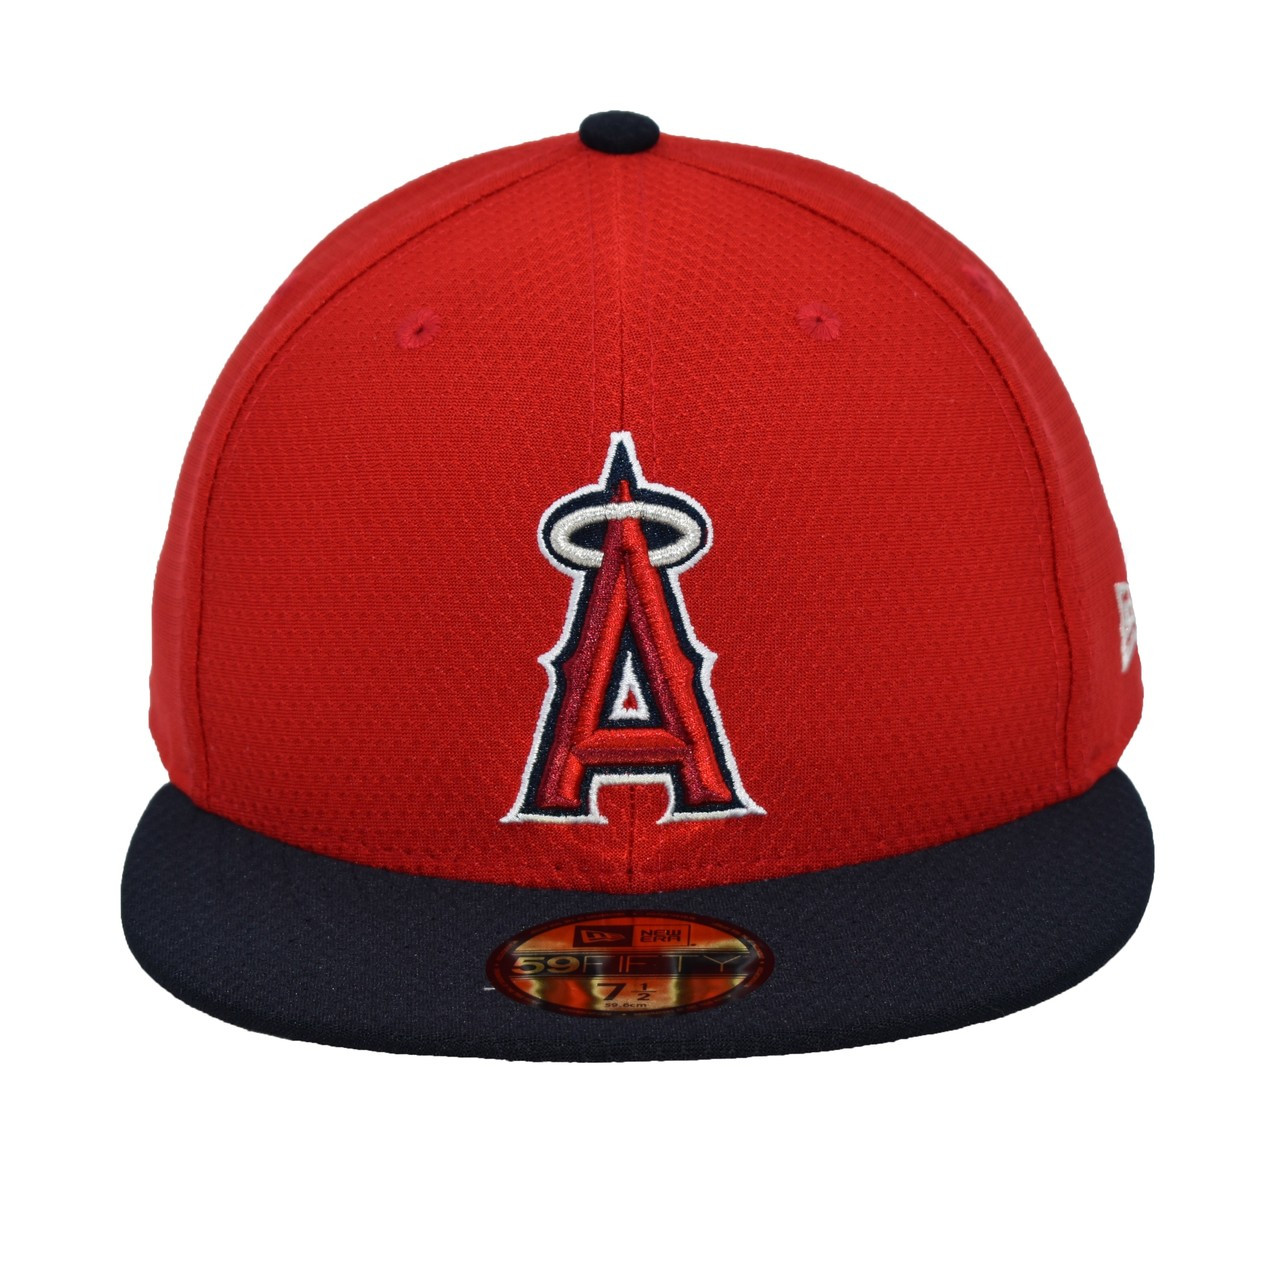 4e3a8be5 Big Dusty 59fifty Hat - HeadwearFittedMens - Los Angeles Angels - - Primary  - Red -